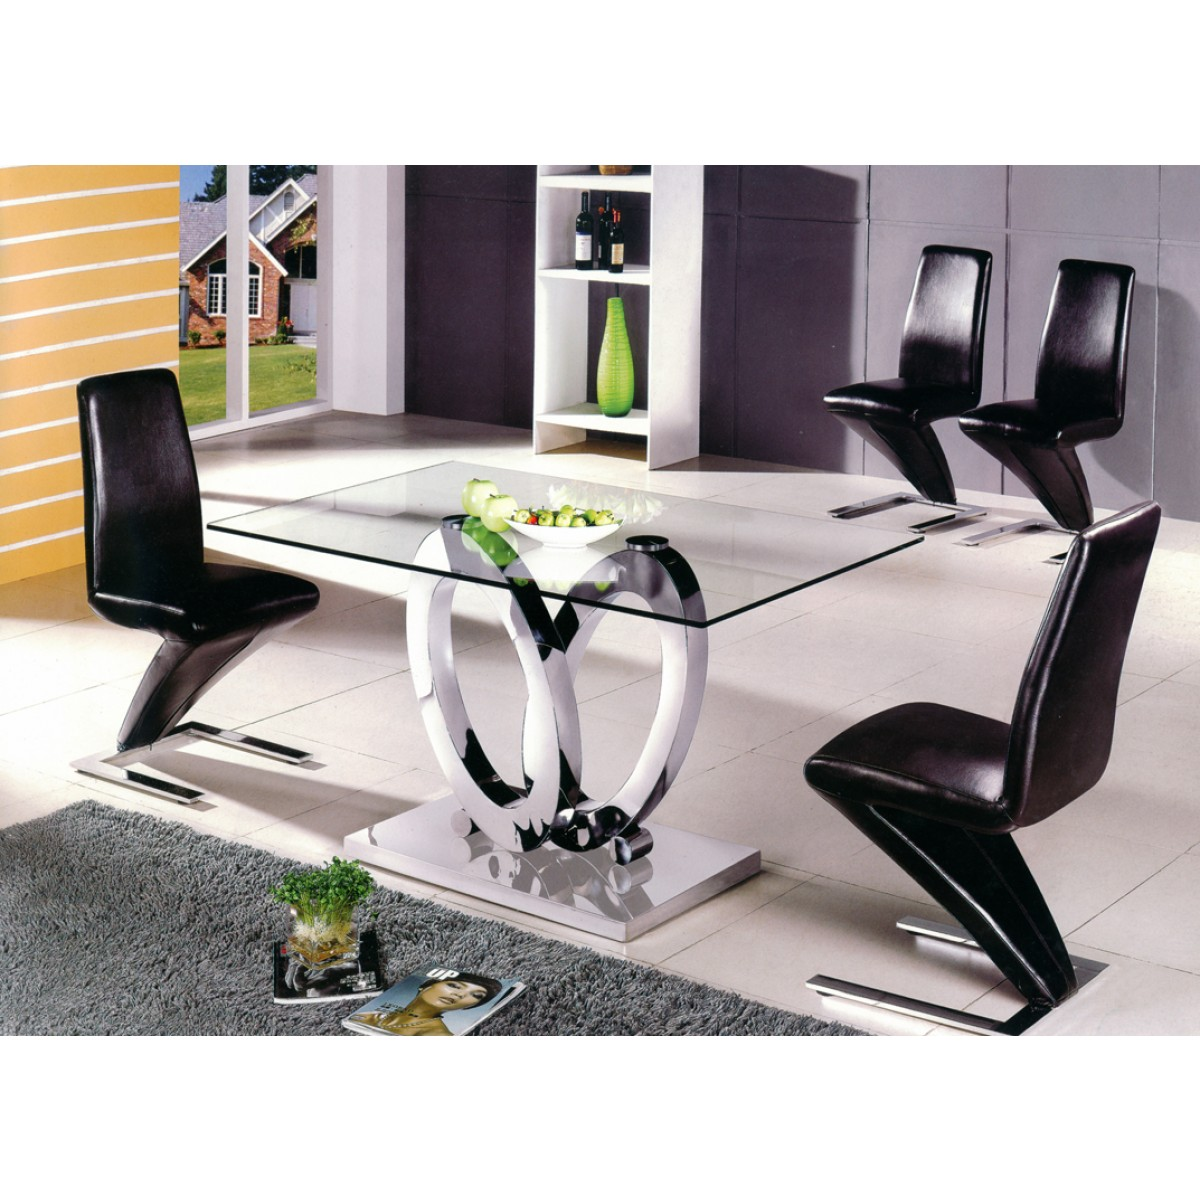 Table manger design ellipse taille au choix tables for Table salle manger